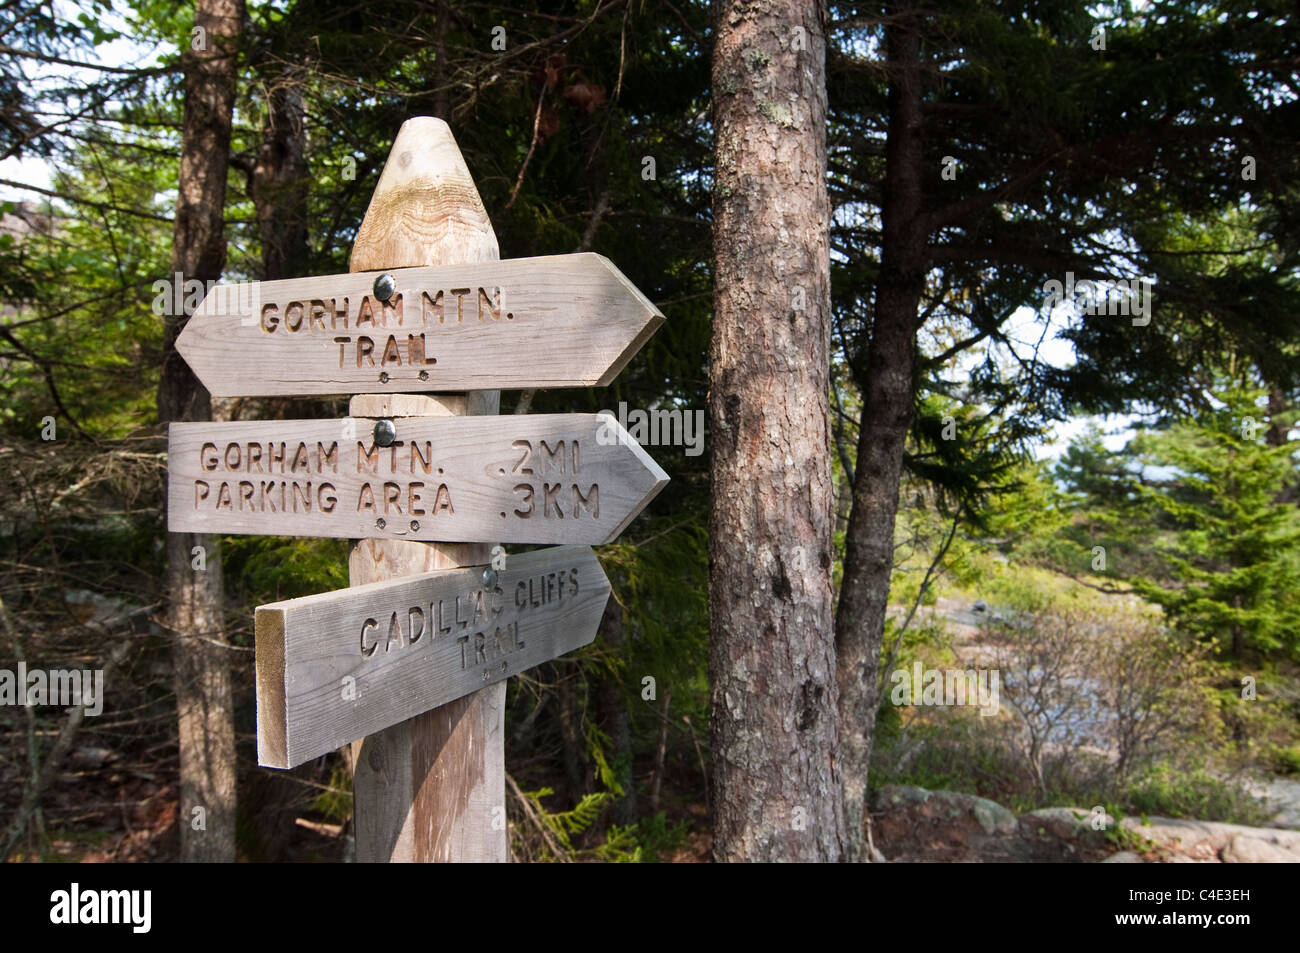 An intersection along the Gorham Mountain Trail in Acadia National Park on Mount Desert Island in Maine. - Stock Image